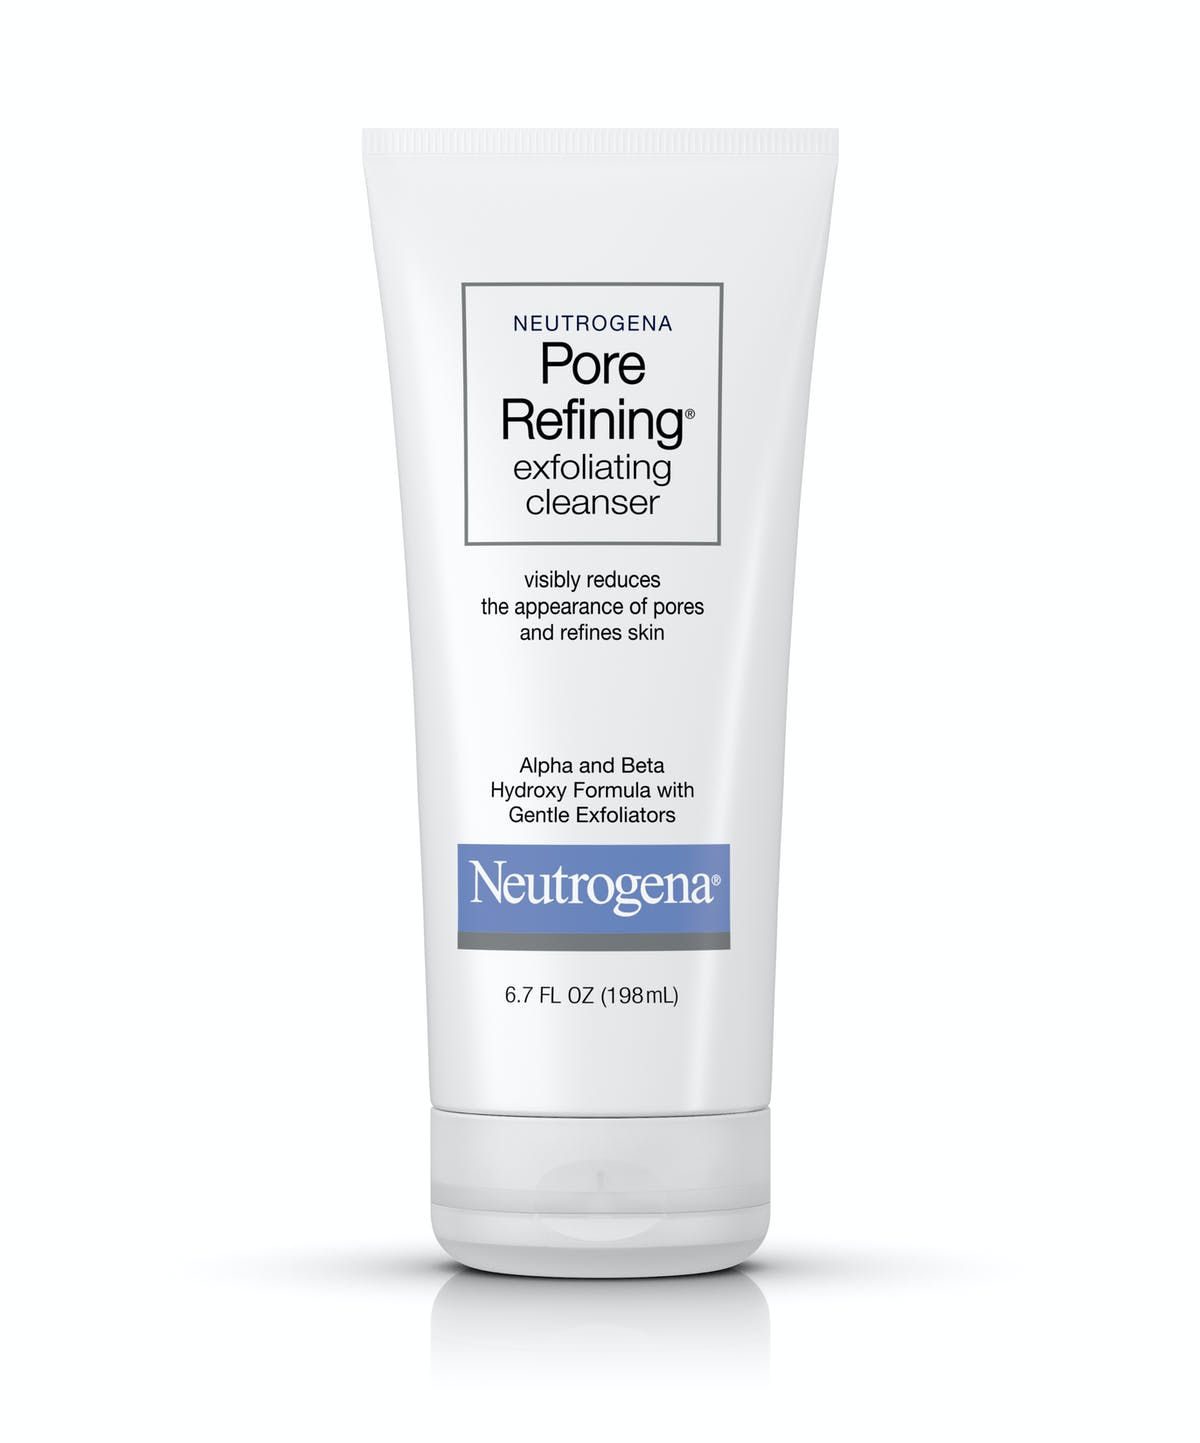 Neutrogena Pore Refining Exfoliating Facial Cleanser Neutrogena